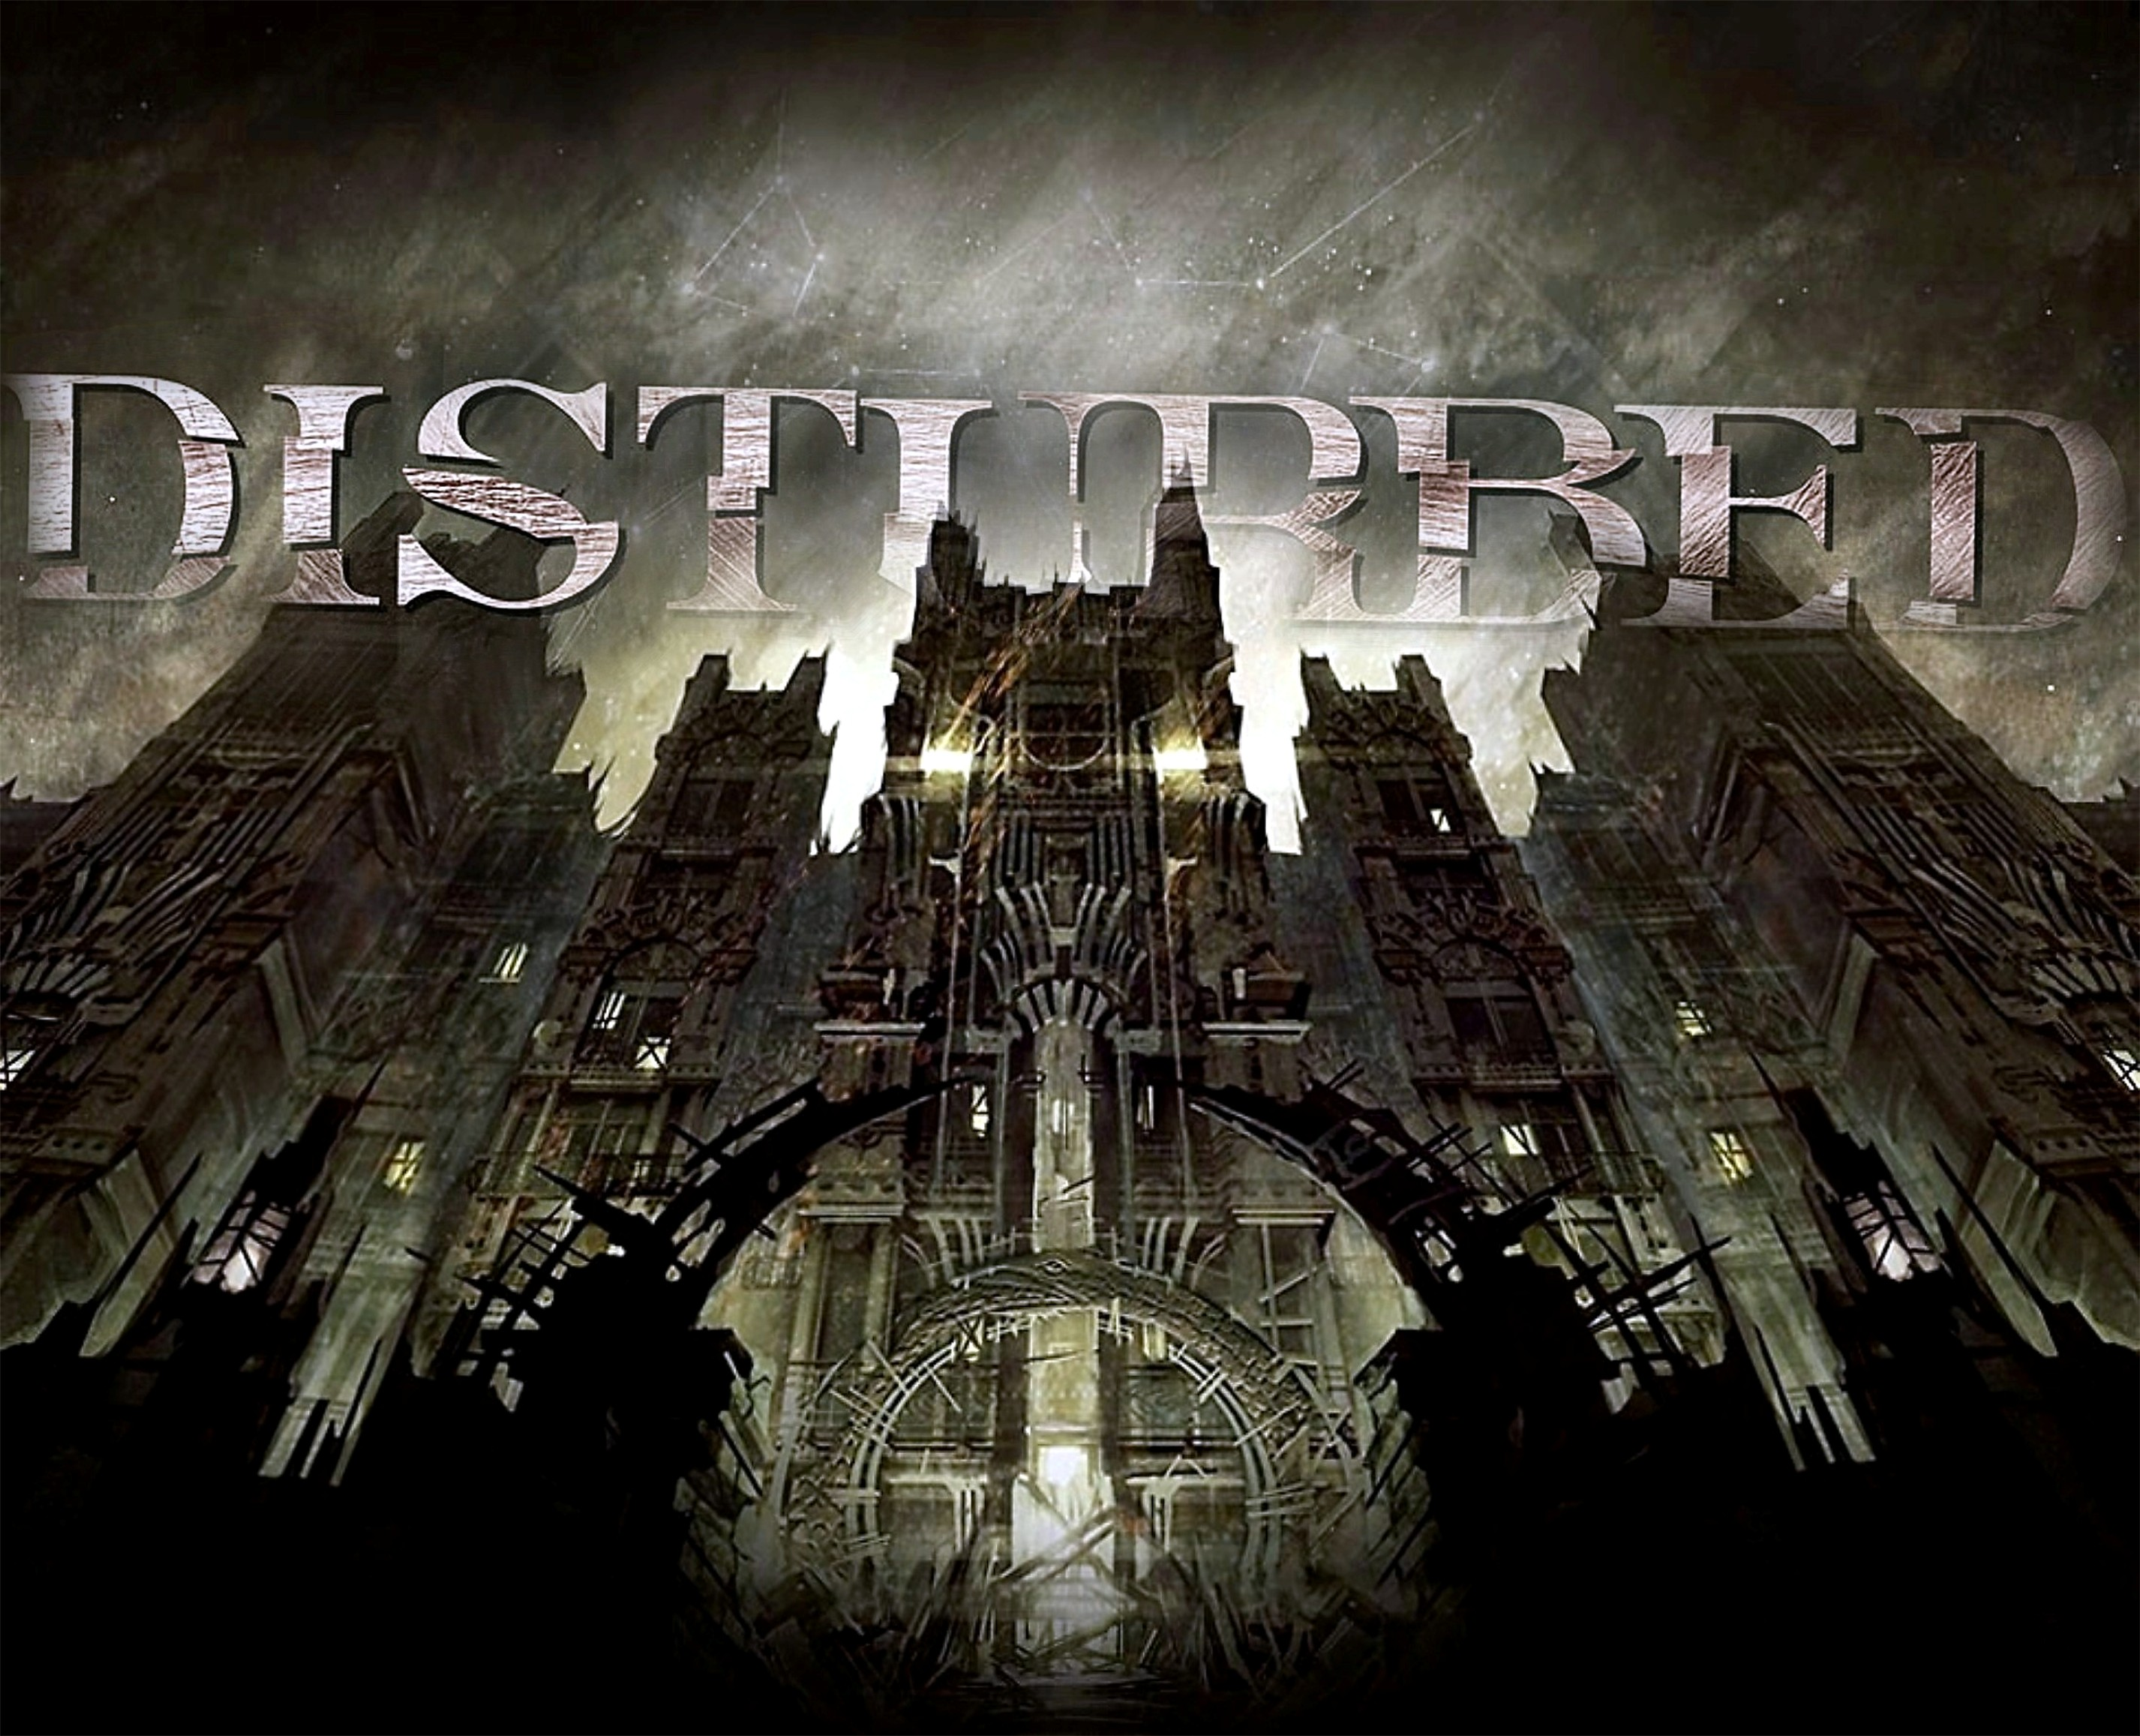 Musik - Disturbed  - Metal - Asylum - Album - Stricken - Ten Thousand Fists - Forgiven - Dropping Plates - Musik Bakgrund